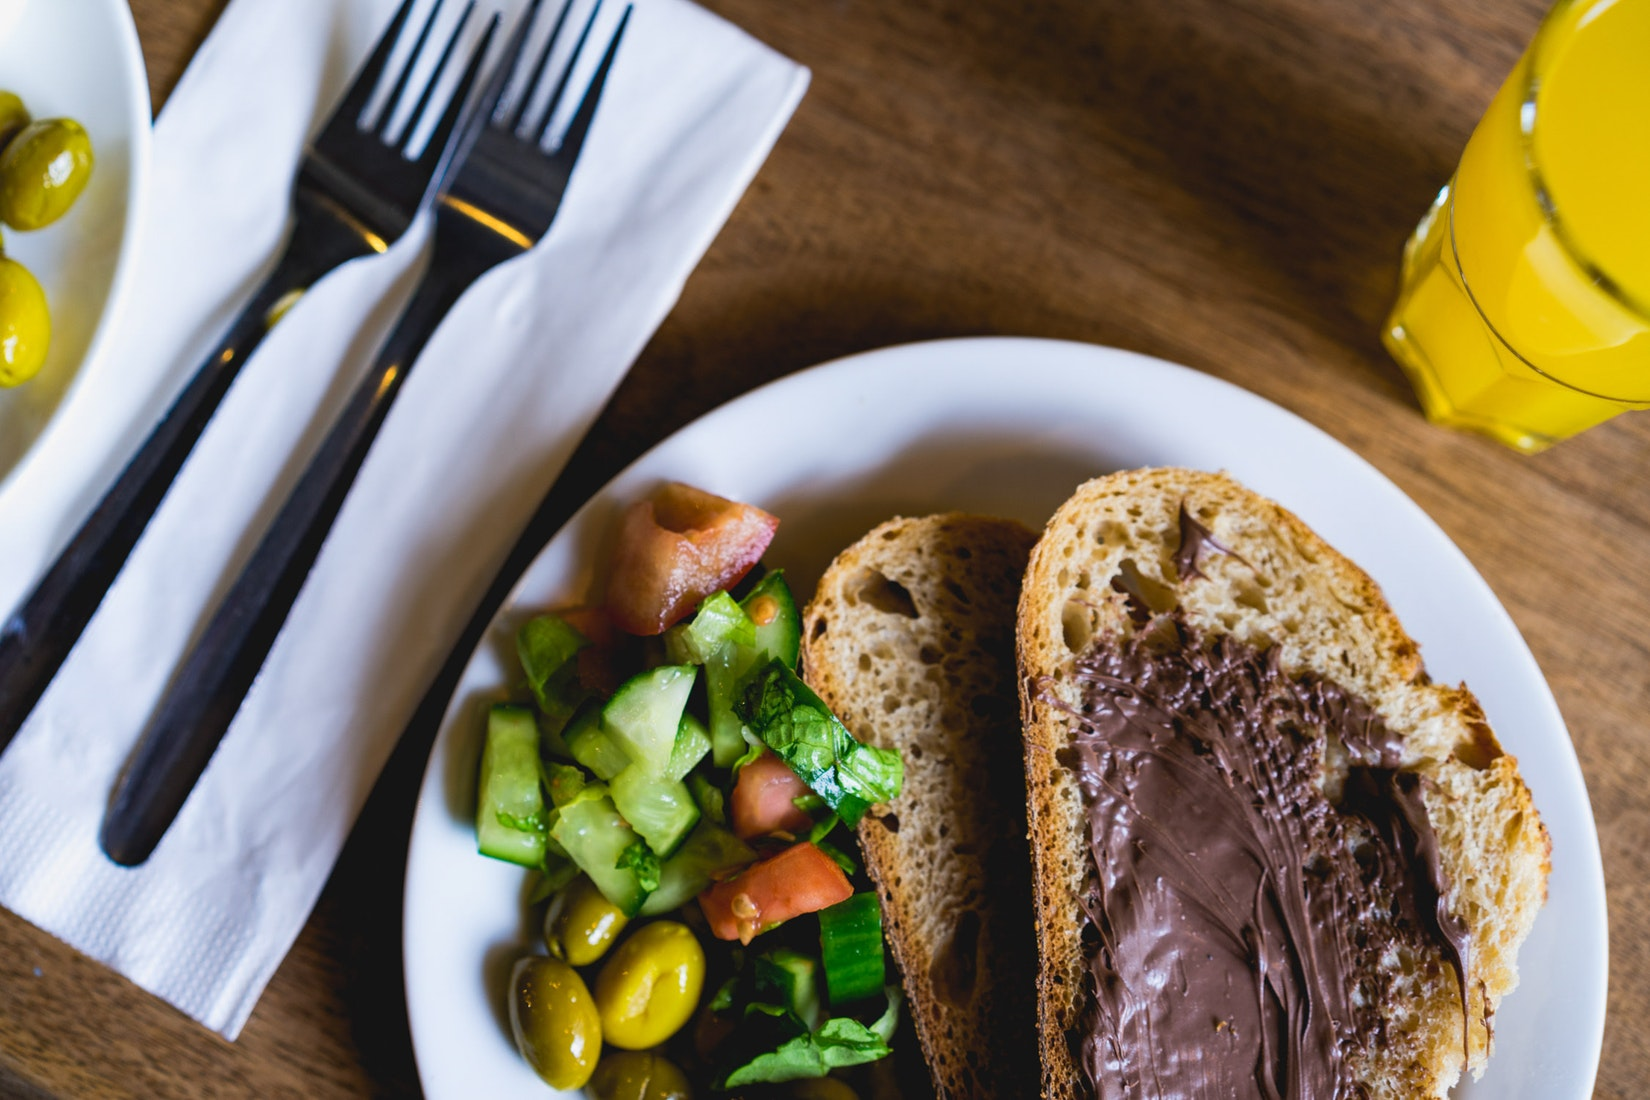 Toast with Nutella, Israeli salad on a rustic bar.